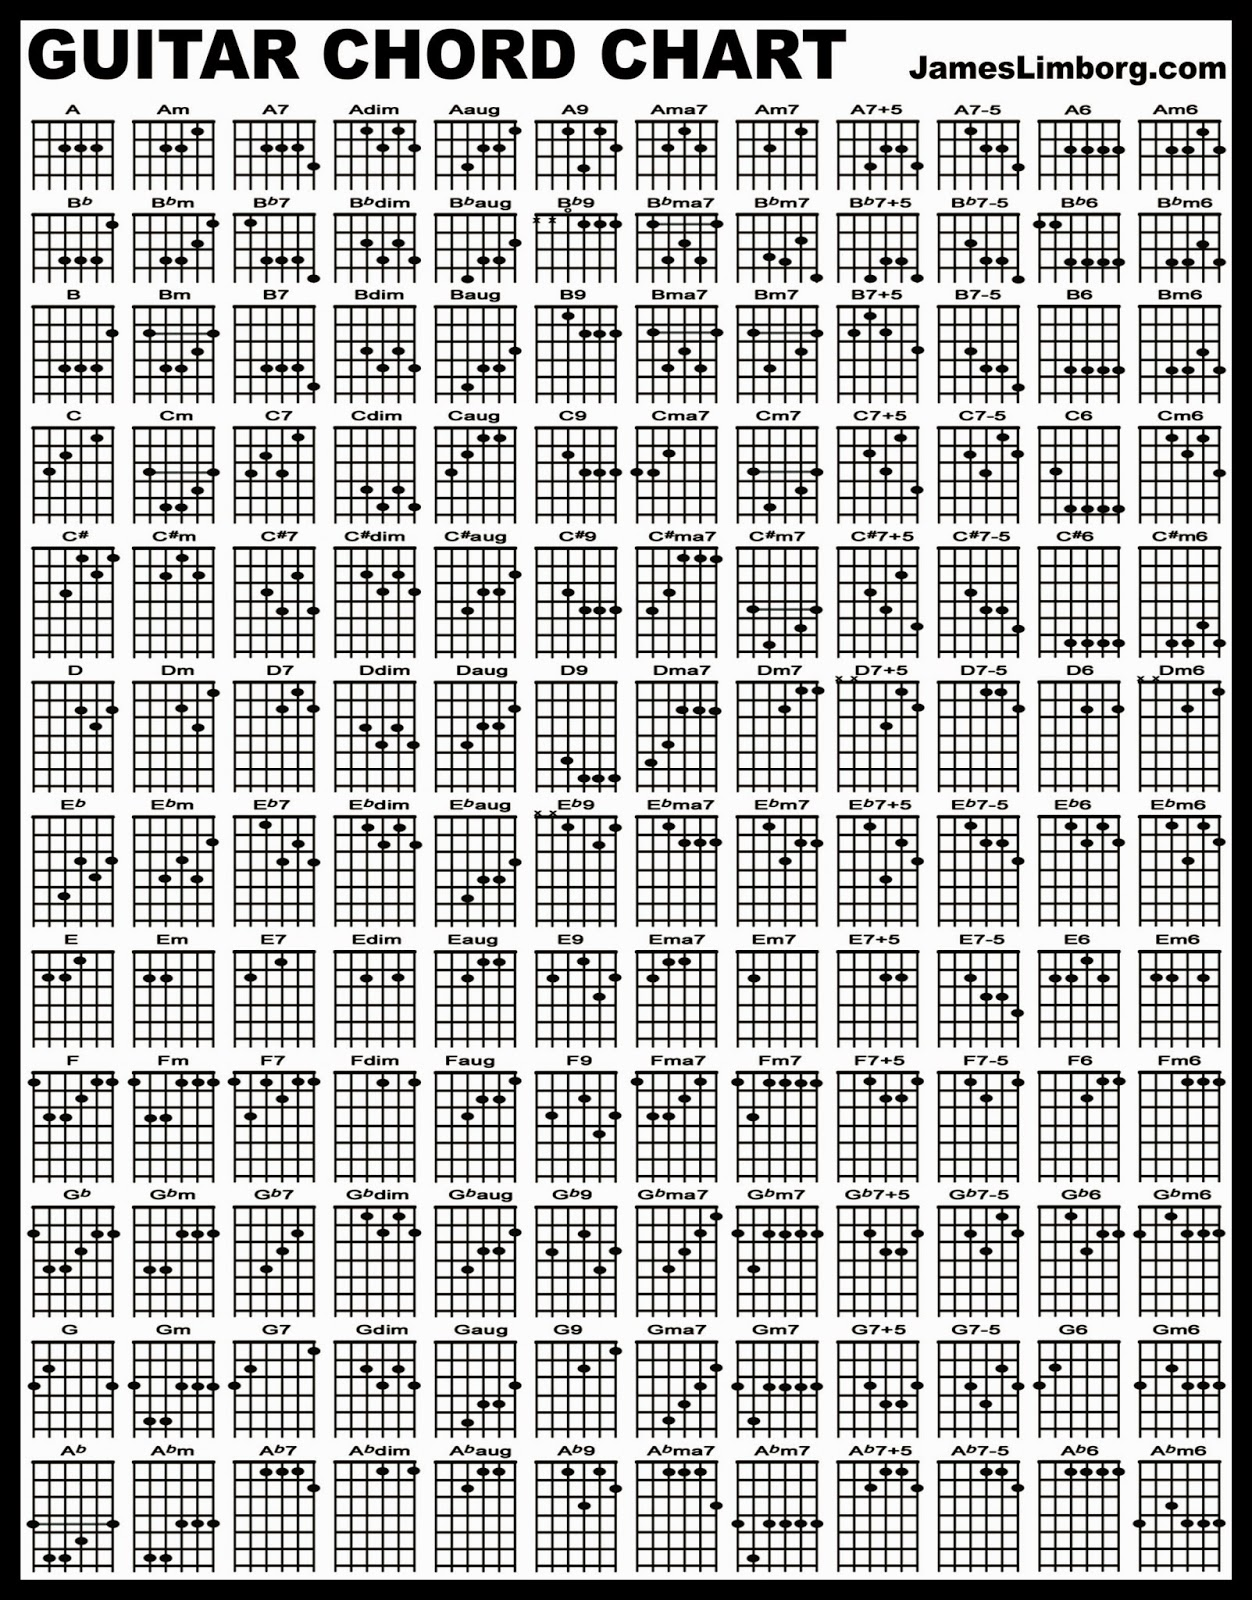 Luxury All Guitar Chords Pdf Free Download Image Collection